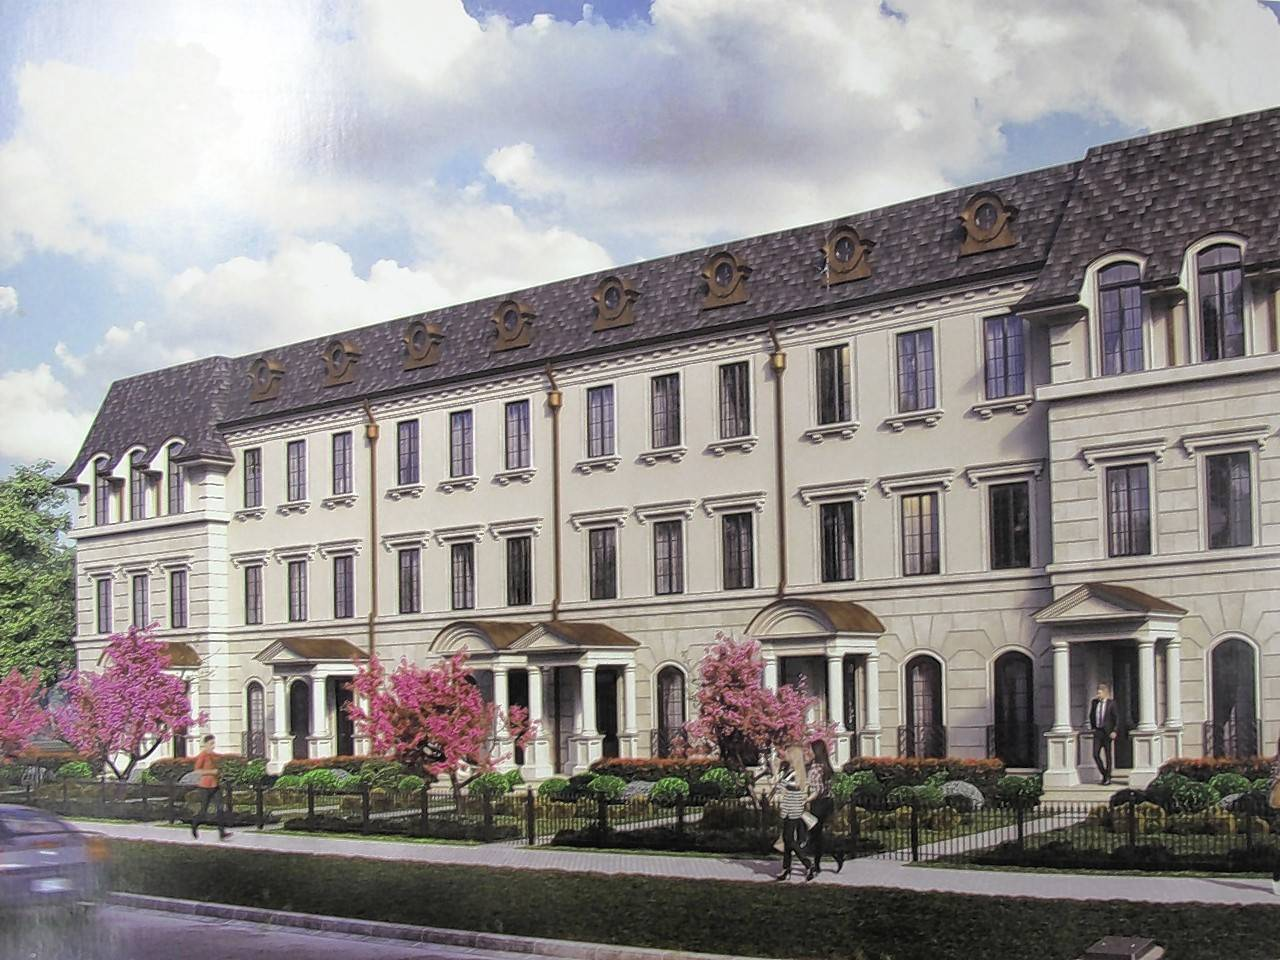 Charleston Row is inspired by a design from London that builder Larry Van Someren saw at a convention in Chicago. The string of six row houses along Aurora Avenue at Webster Street in downtown Naperville is expected to be complete by spring or summer 2018.